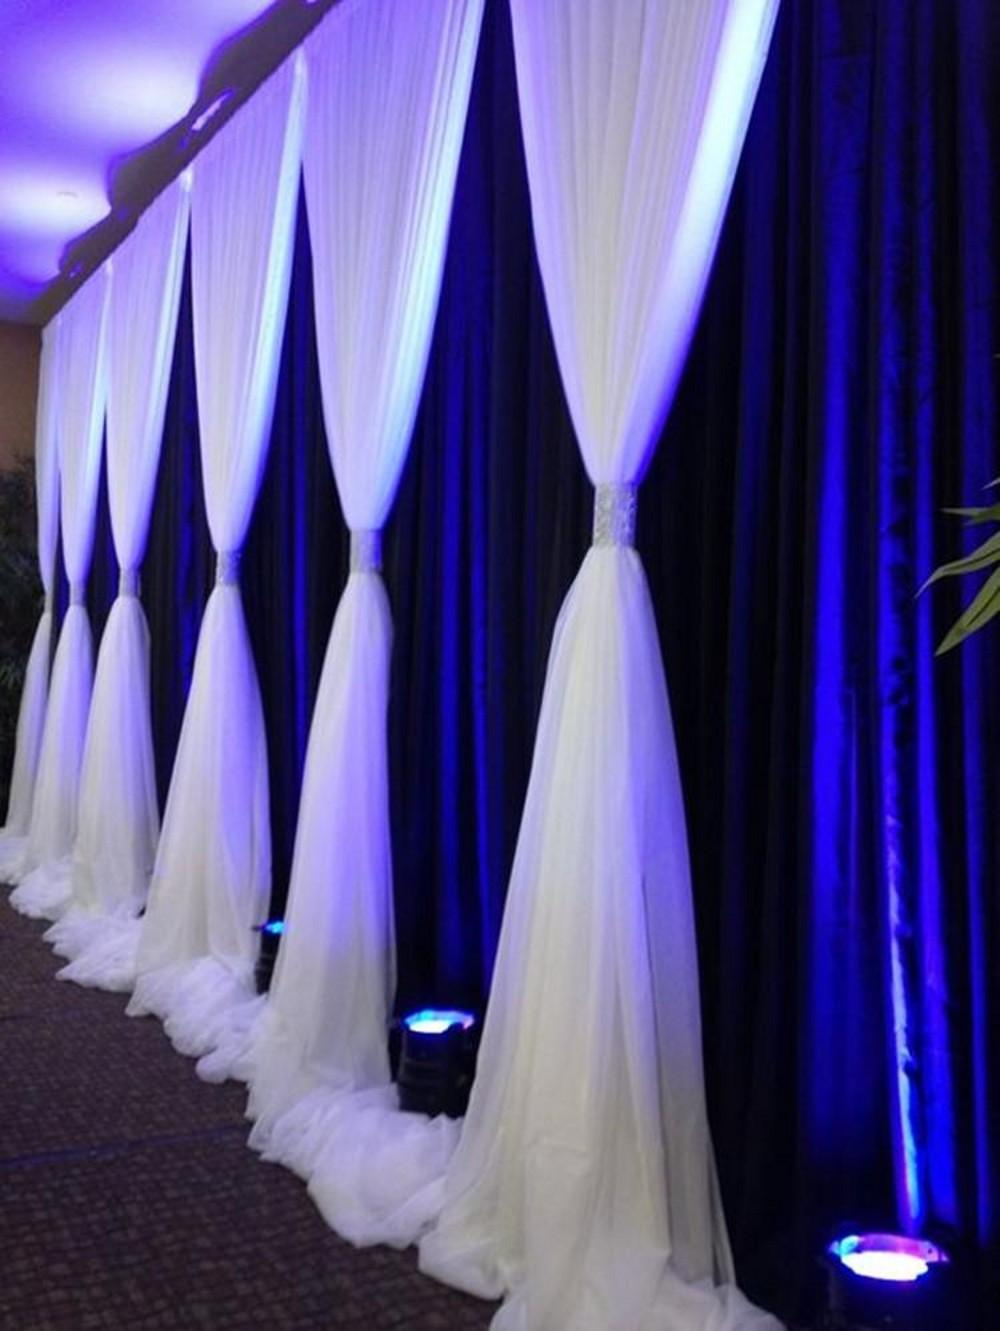 3m*6m Royal Blue Wedding Backdrop With White Volie Valance Wedding Stage  Backdrop Photography Background Draping Swags Curtains Party Boxes Party  Boxes For Kids From Packageseller, $135.58| DHgate.Com